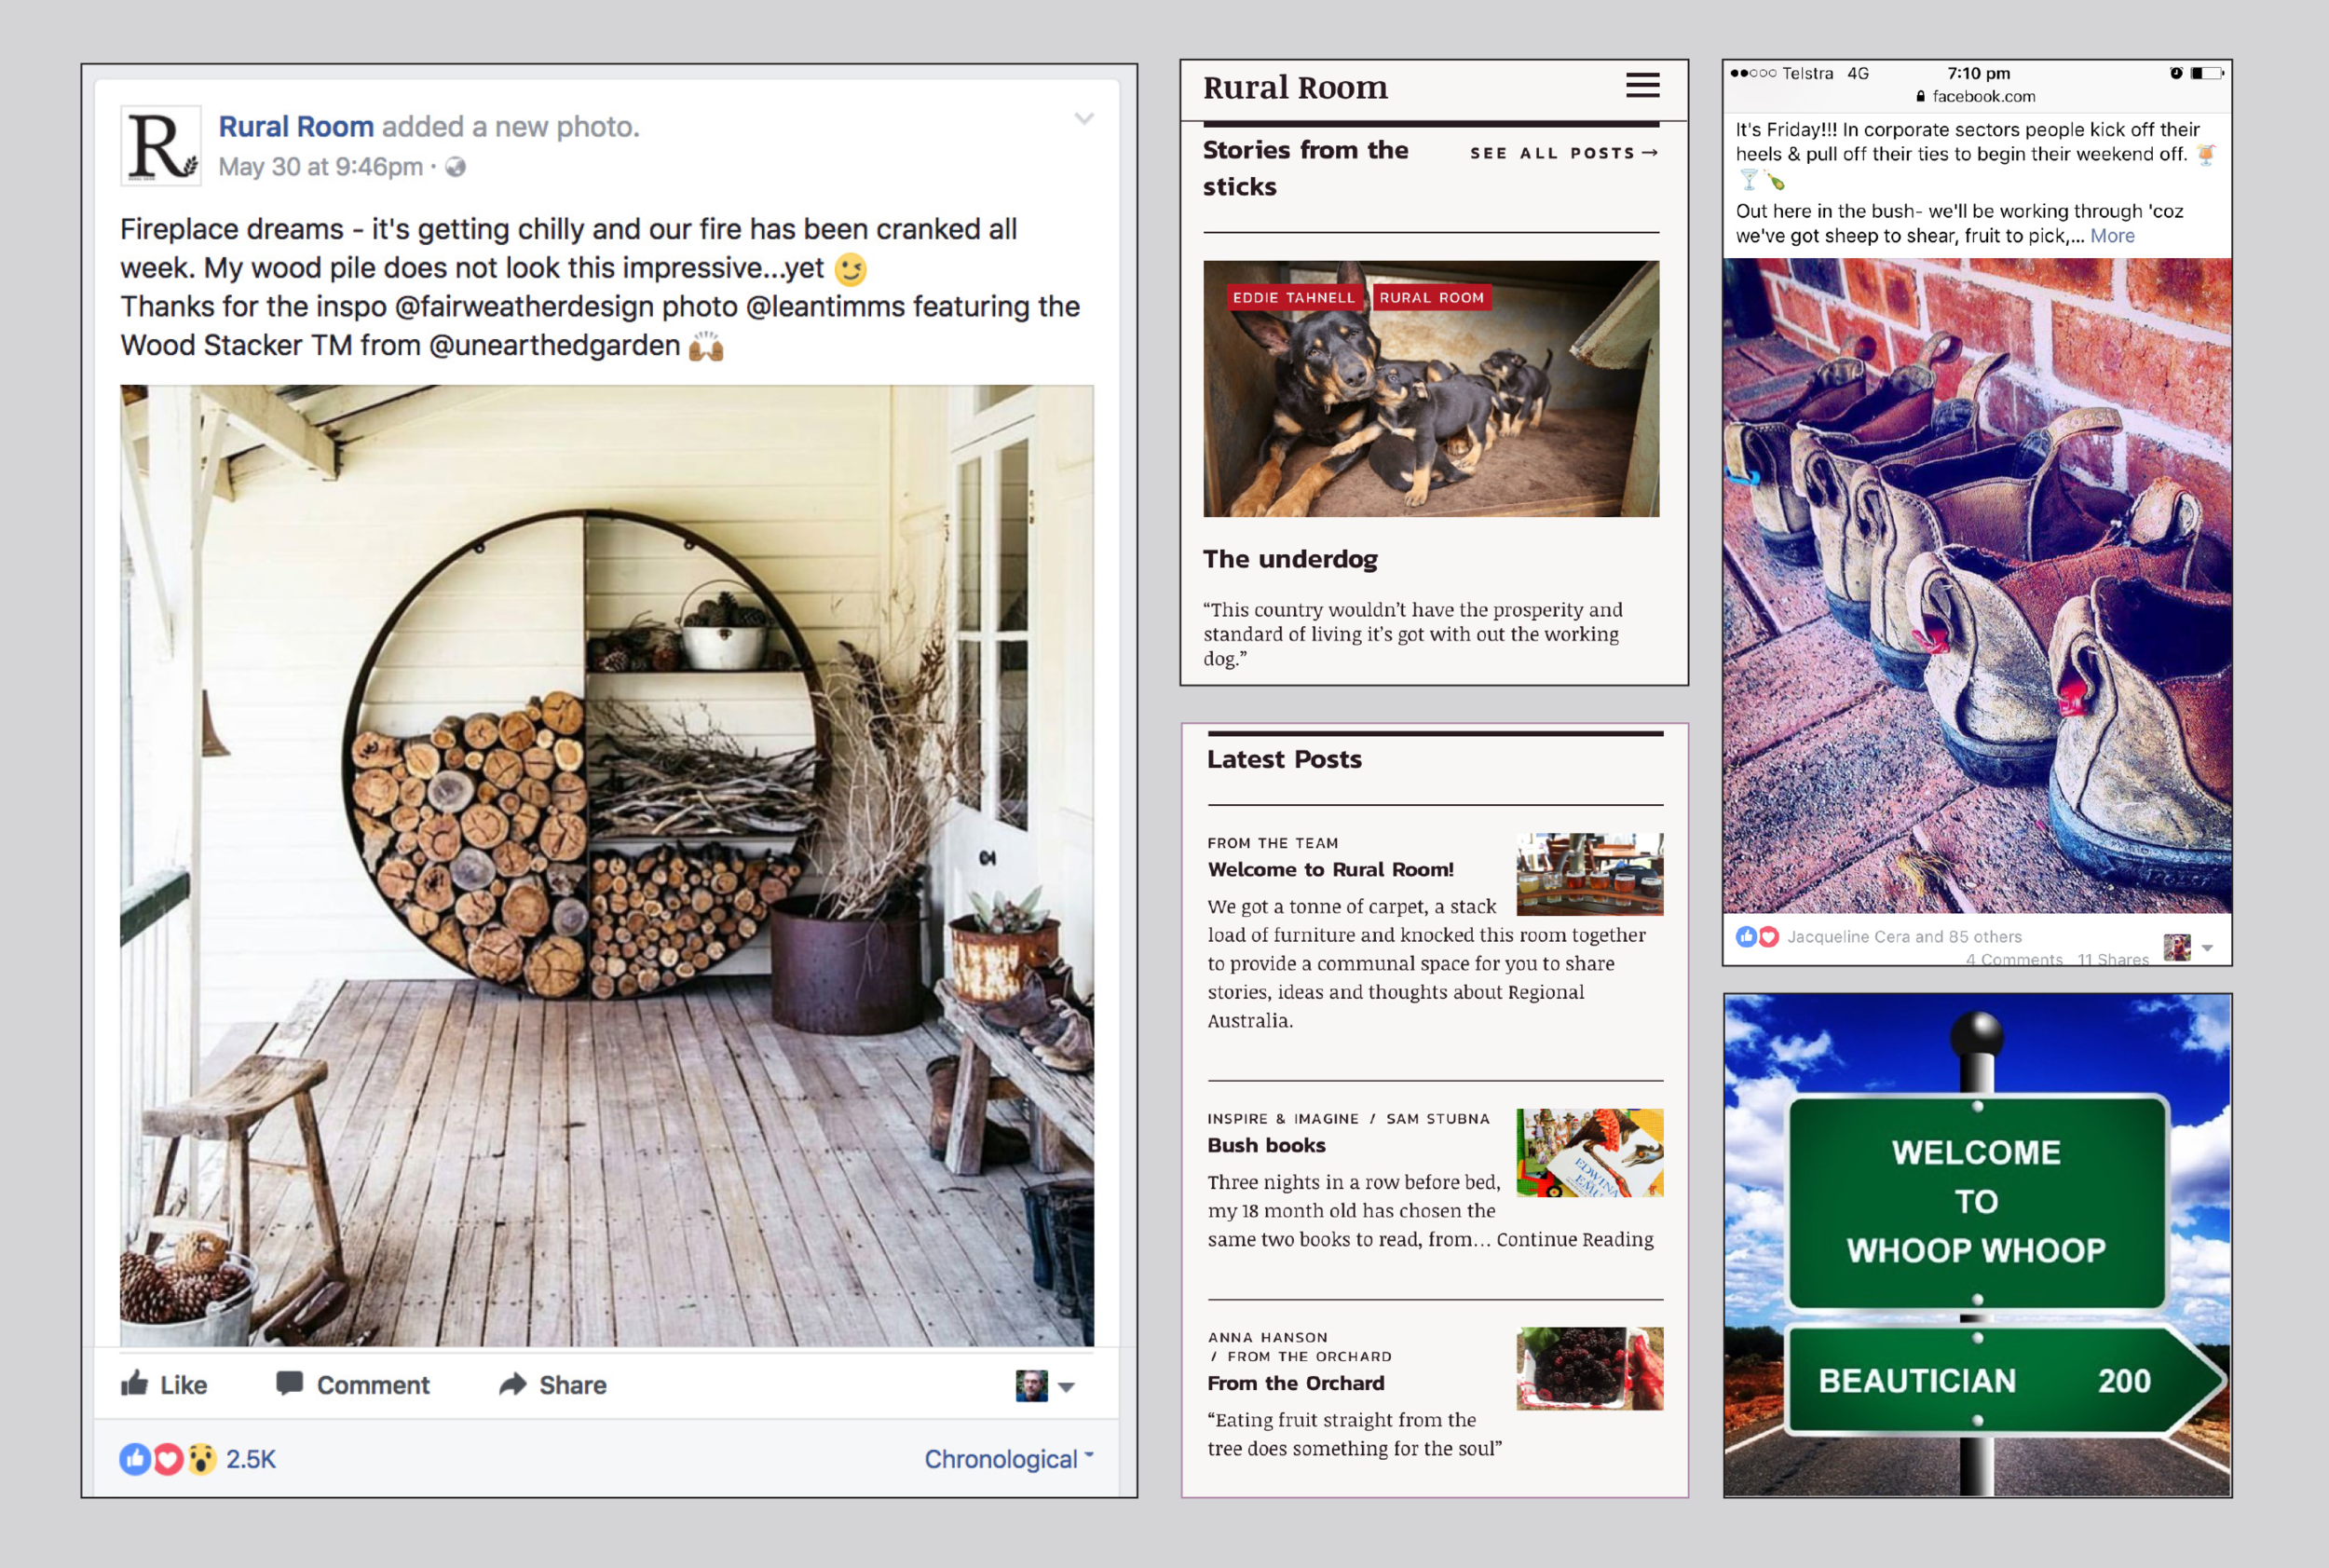 The Rural Room post, above, reached 356,463 people, received 2,500 Likes, 2000 Comments and 1000 Shares